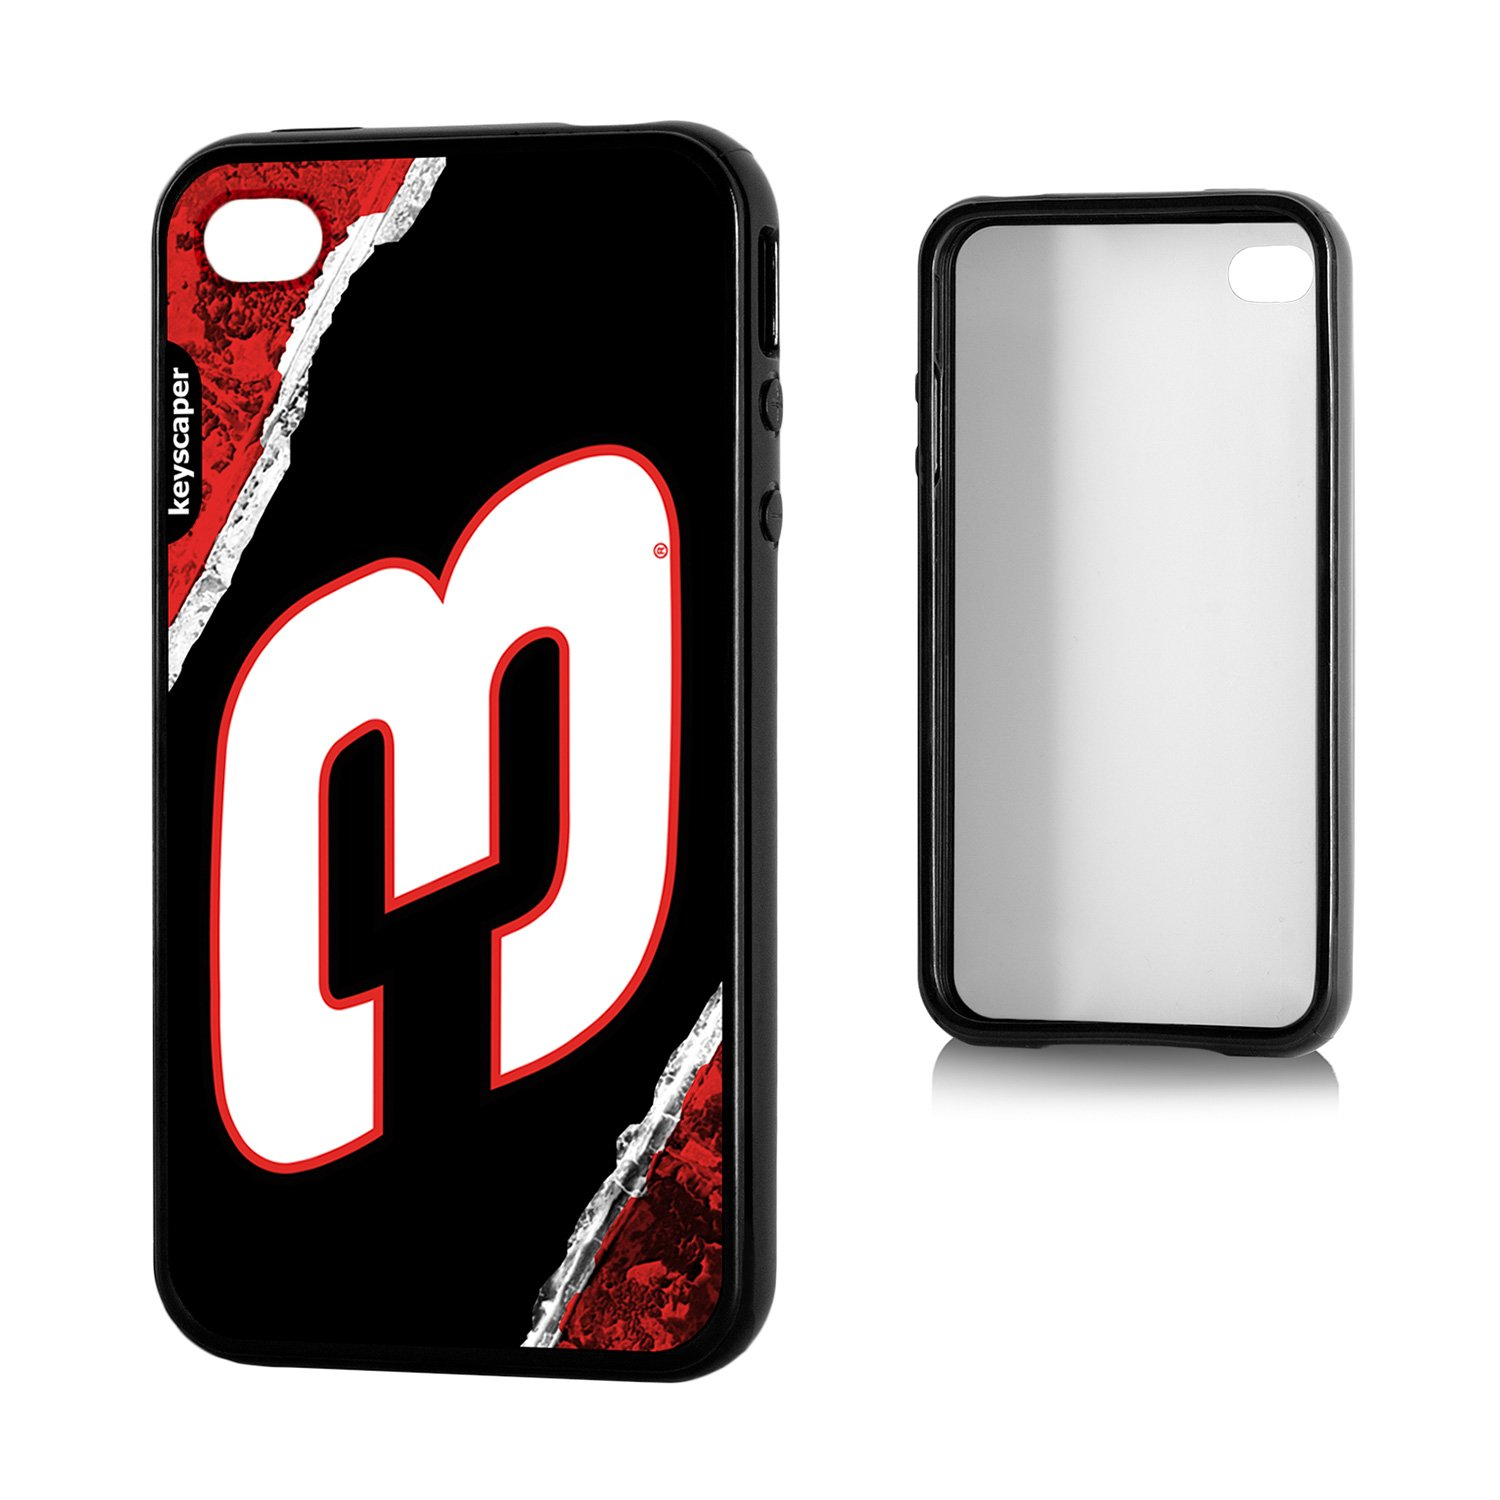 【未使用品】 NASCAR Tradition # 3 iPhone iPhone 4 & iPhone by 4sバンパーケースOfficially The Licensed by Nascar For The Apple iPhone 4/ 4s by Keyscaper ®柔軟なフルカバー低プロファイル B00UCF8K2S, ミヤダムラ:568bf725 --- arianechie.dominiotemporario.com